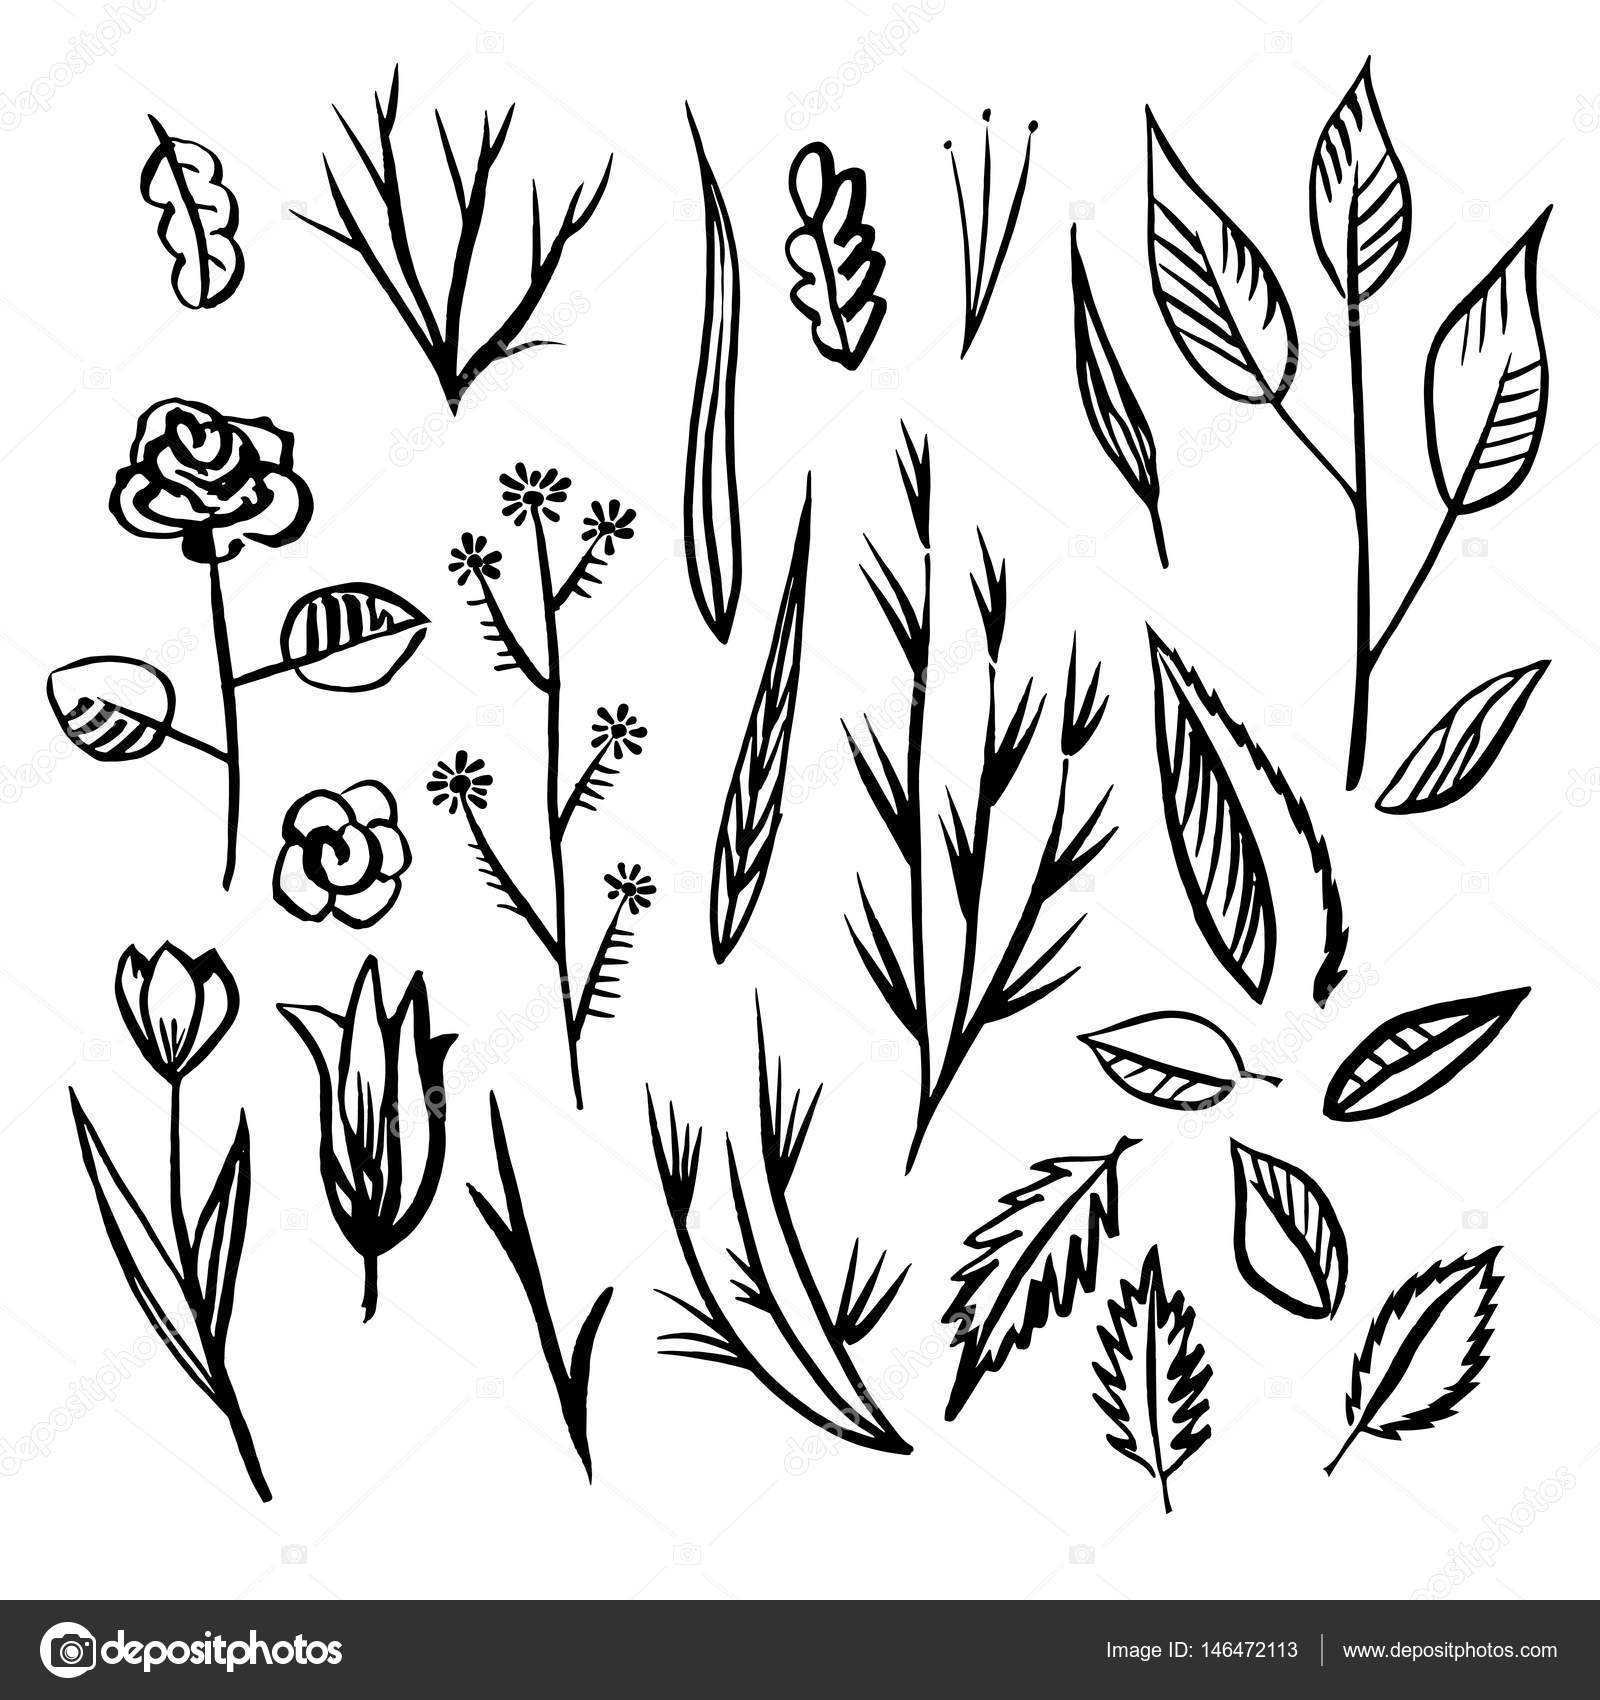 Floral designs detail sketch — Stock Vector © roma79 0979 mail